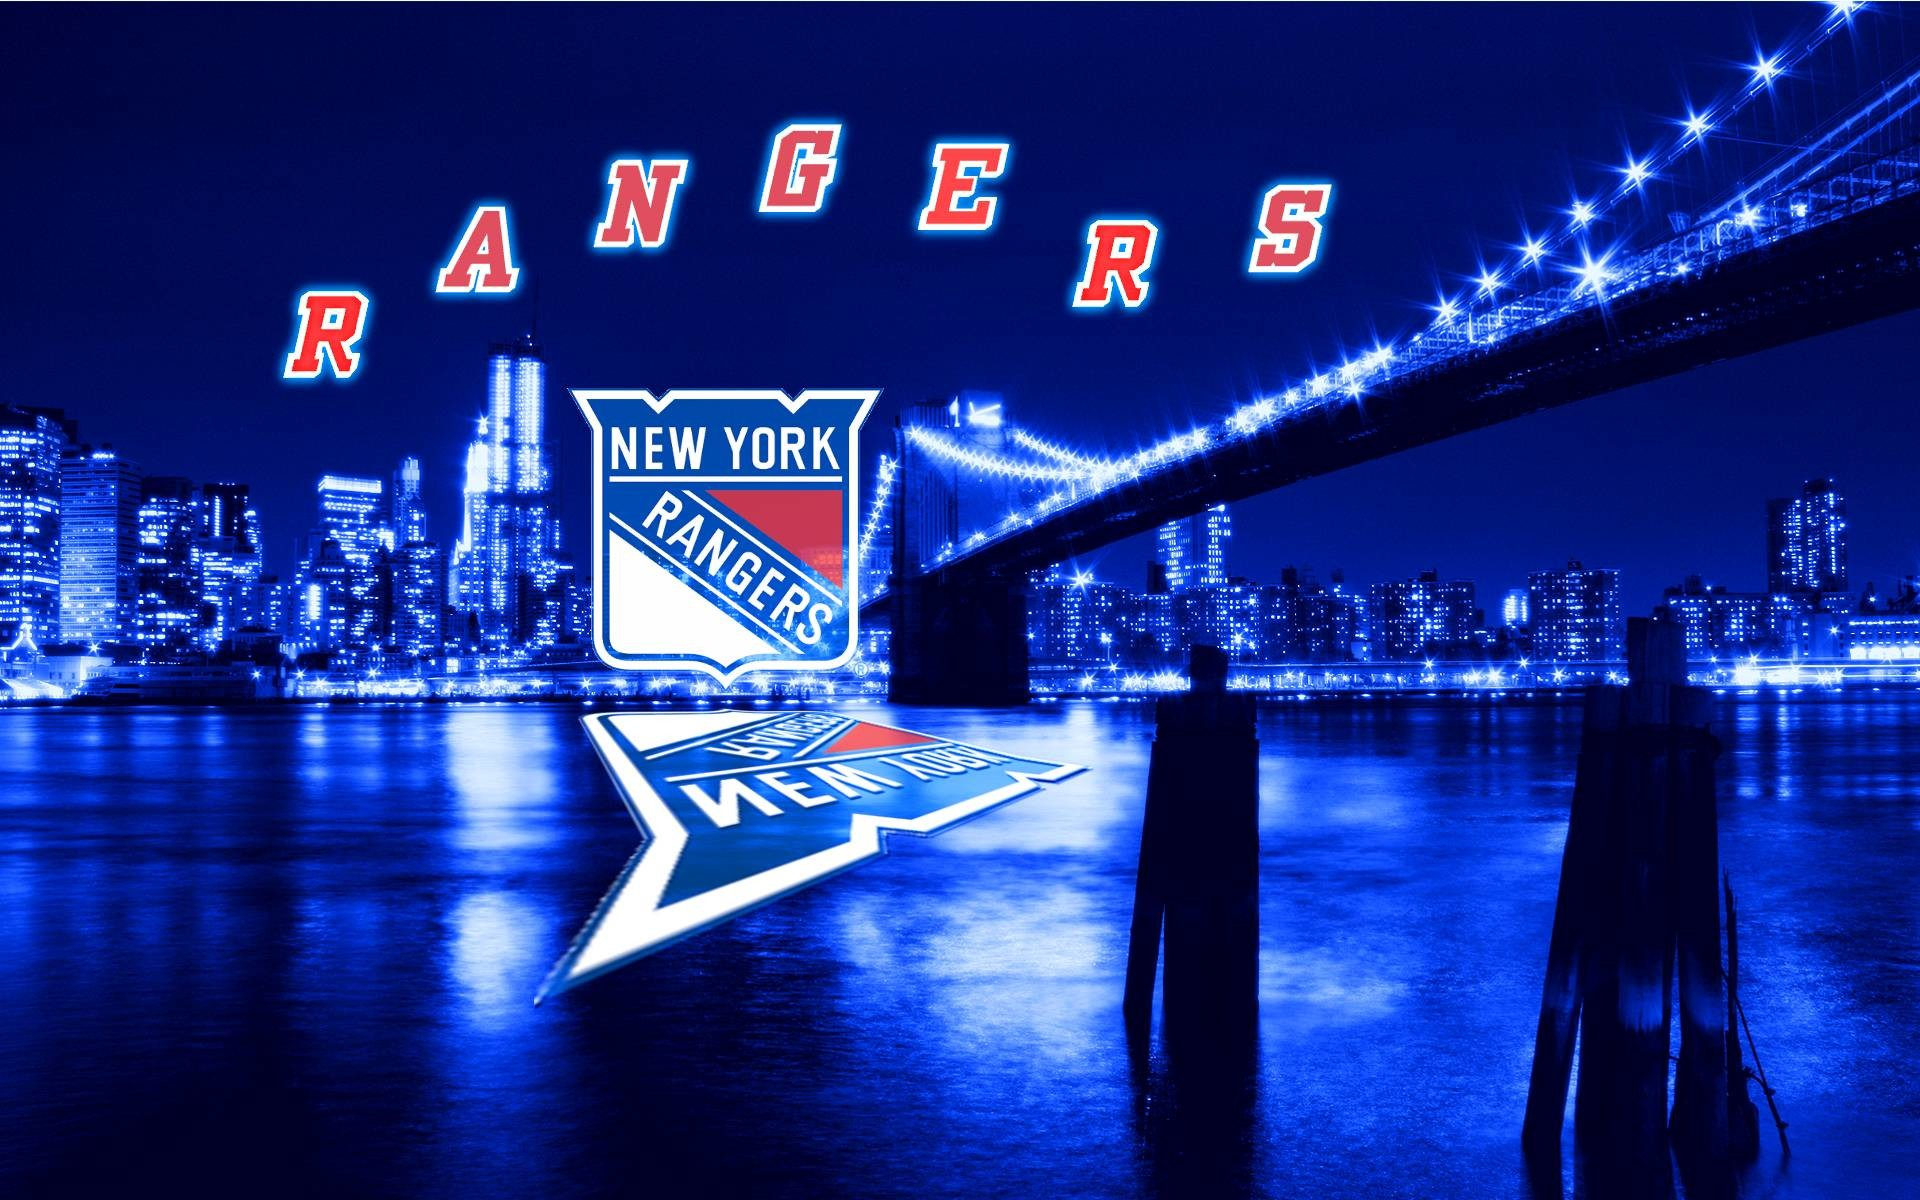 Res: 1920x1200, Download New York Rangers Images, Wallpapers and Pictures BackGrounds  Collection for mobile and desktop